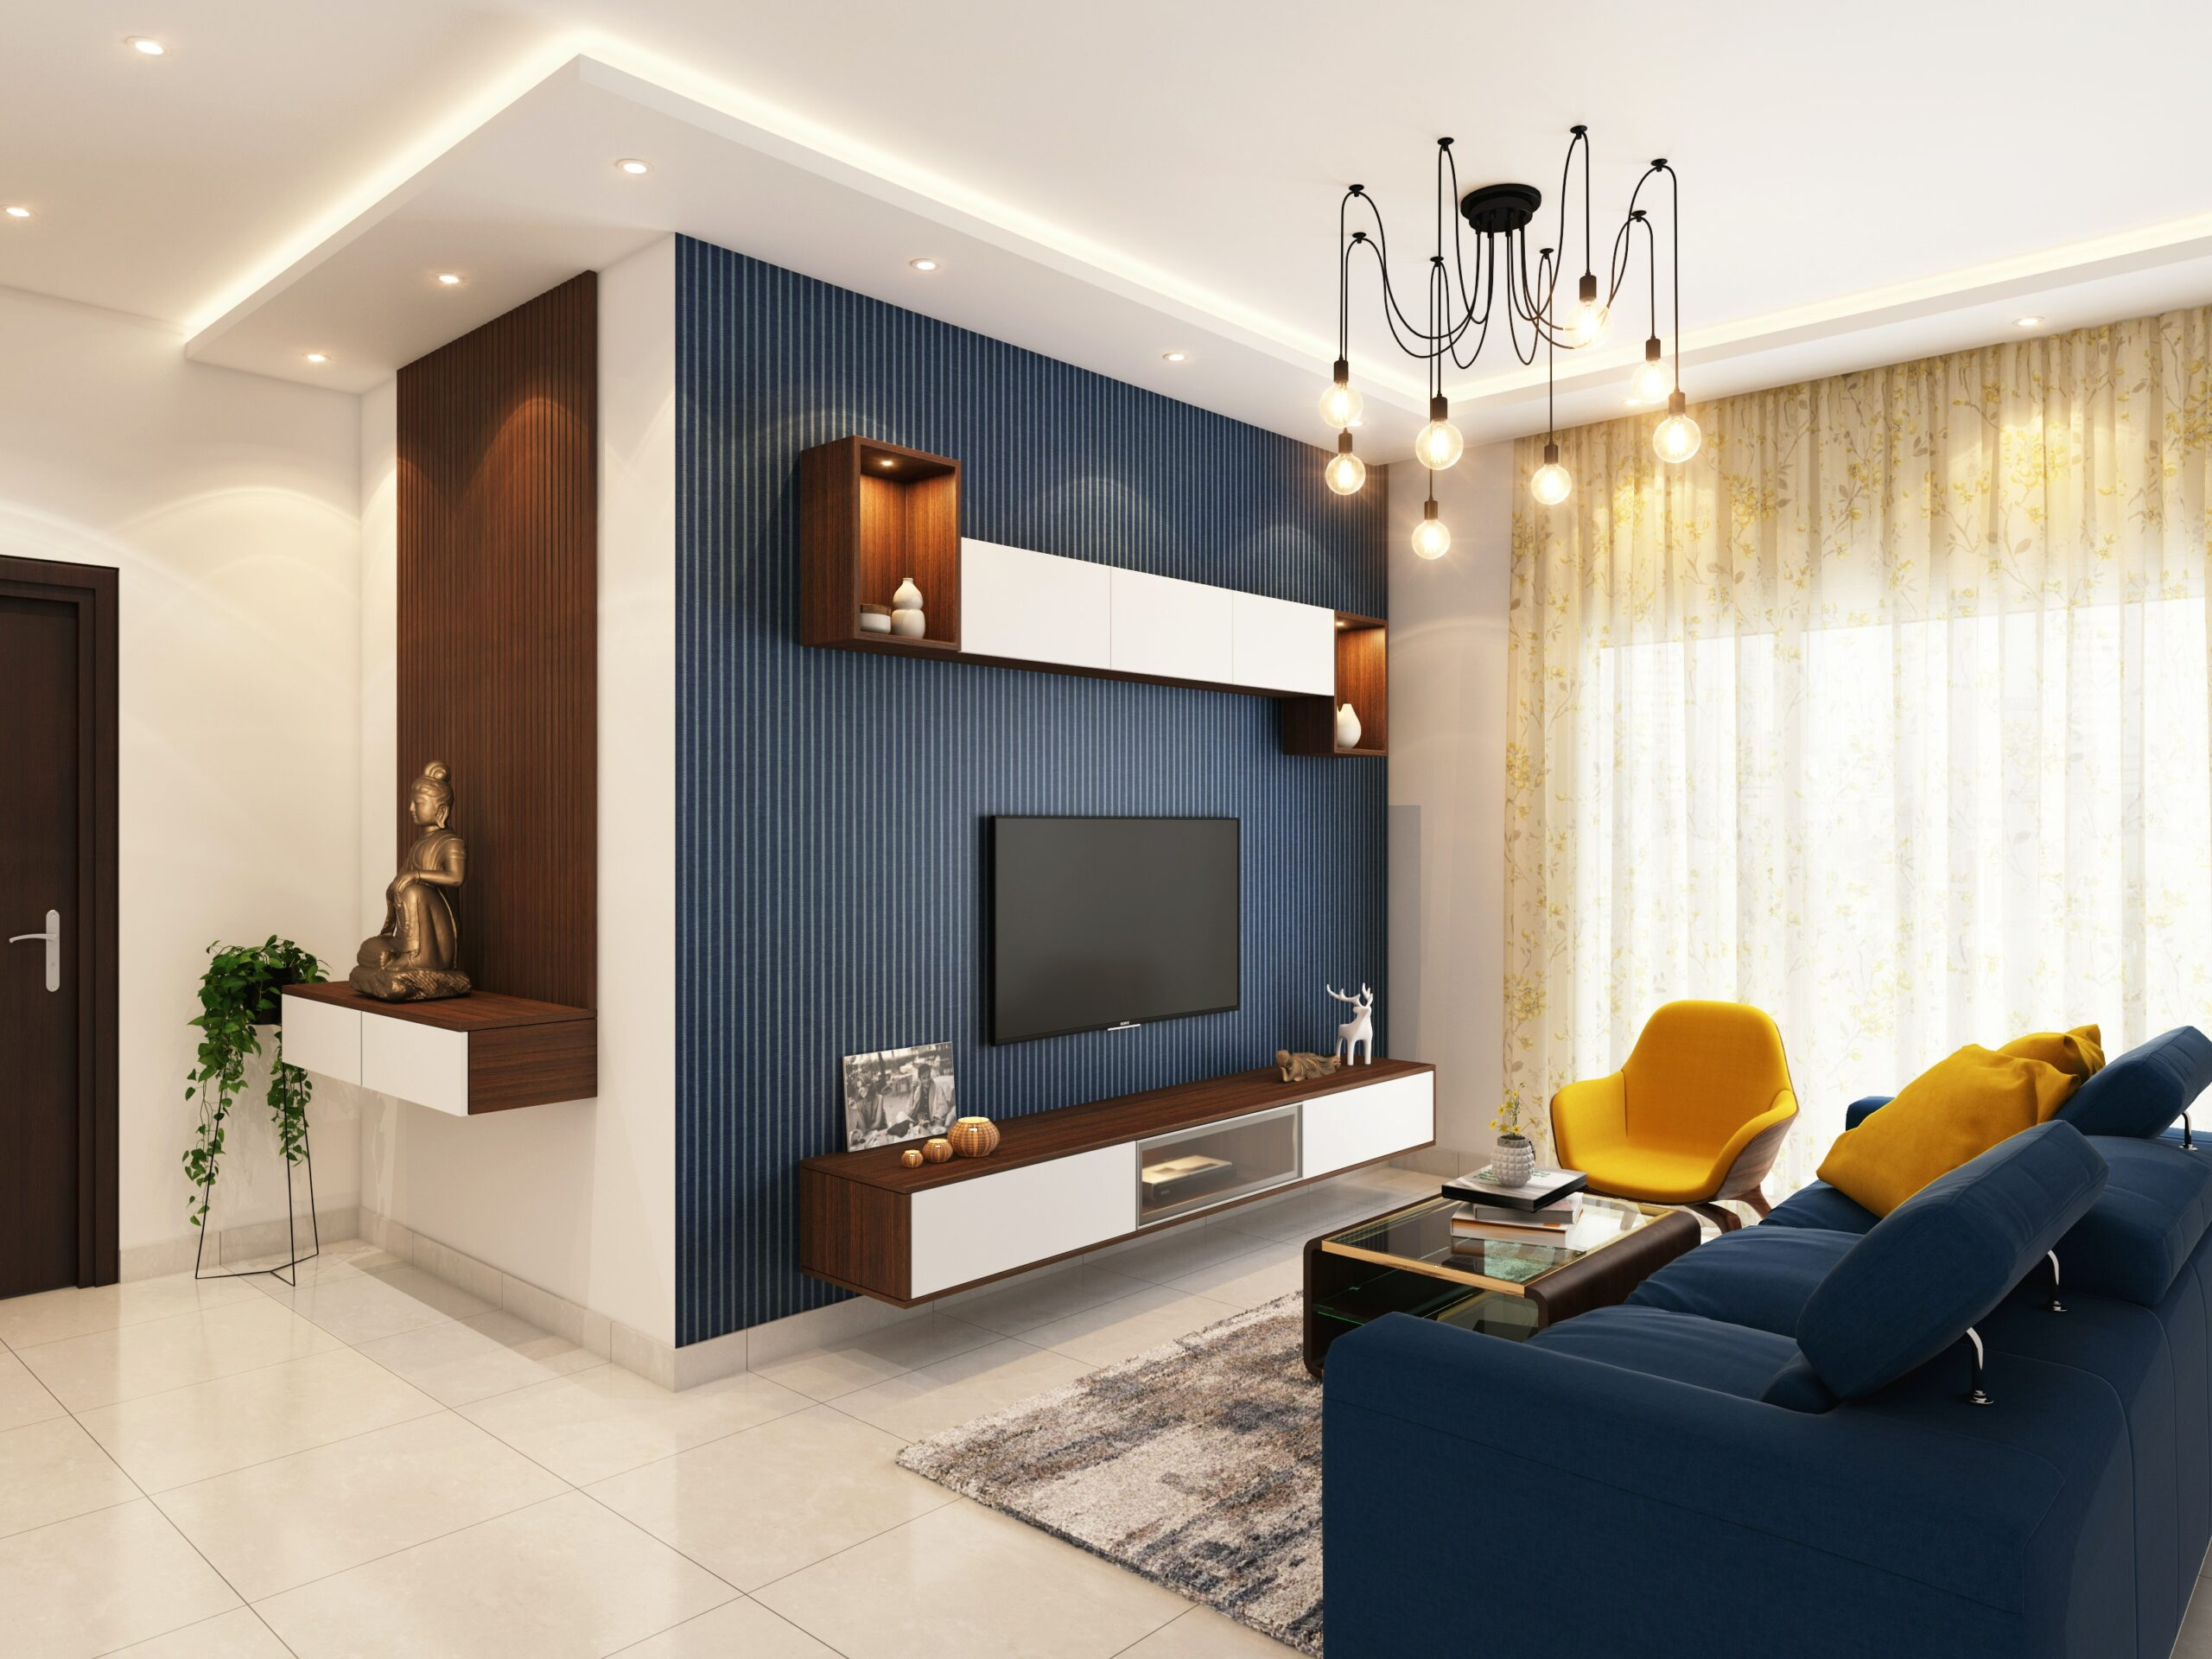 How to Design a Home Space for Entertaining